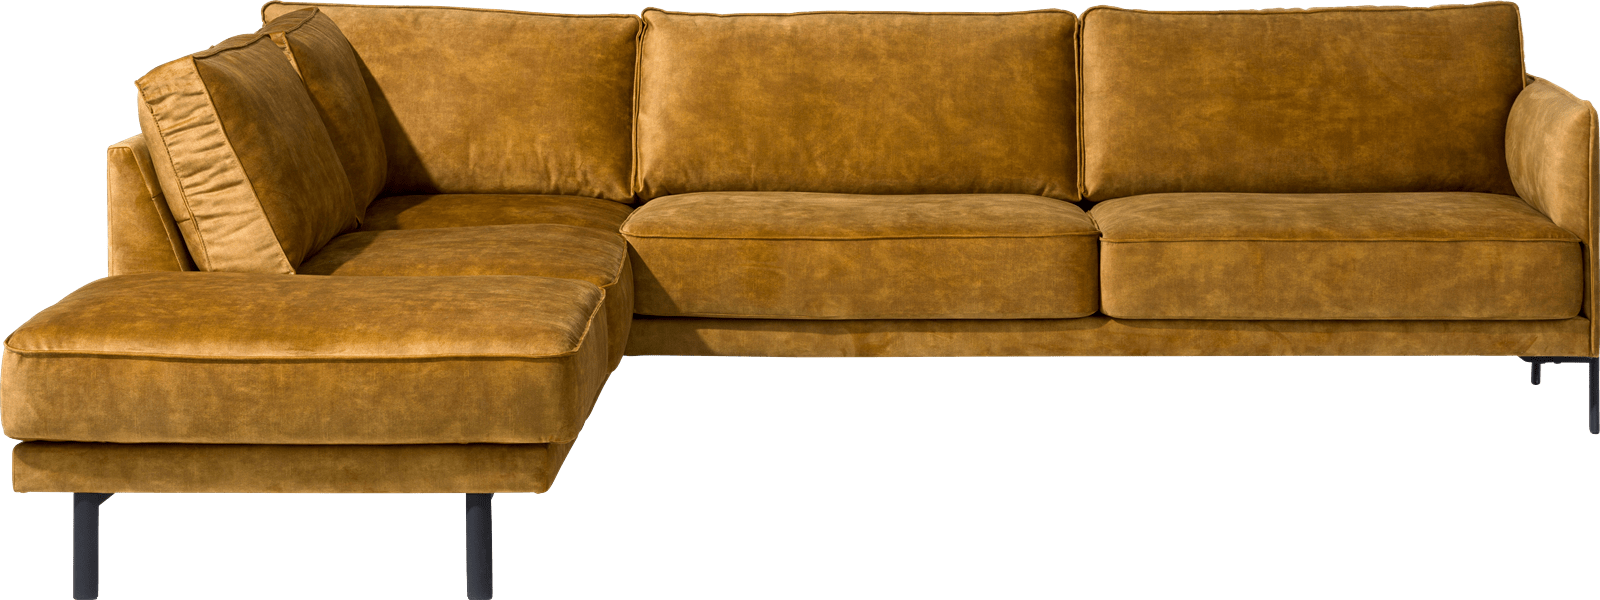 XOOON - Modena - Skandinavisches Design - Sofas - ottomane big - links